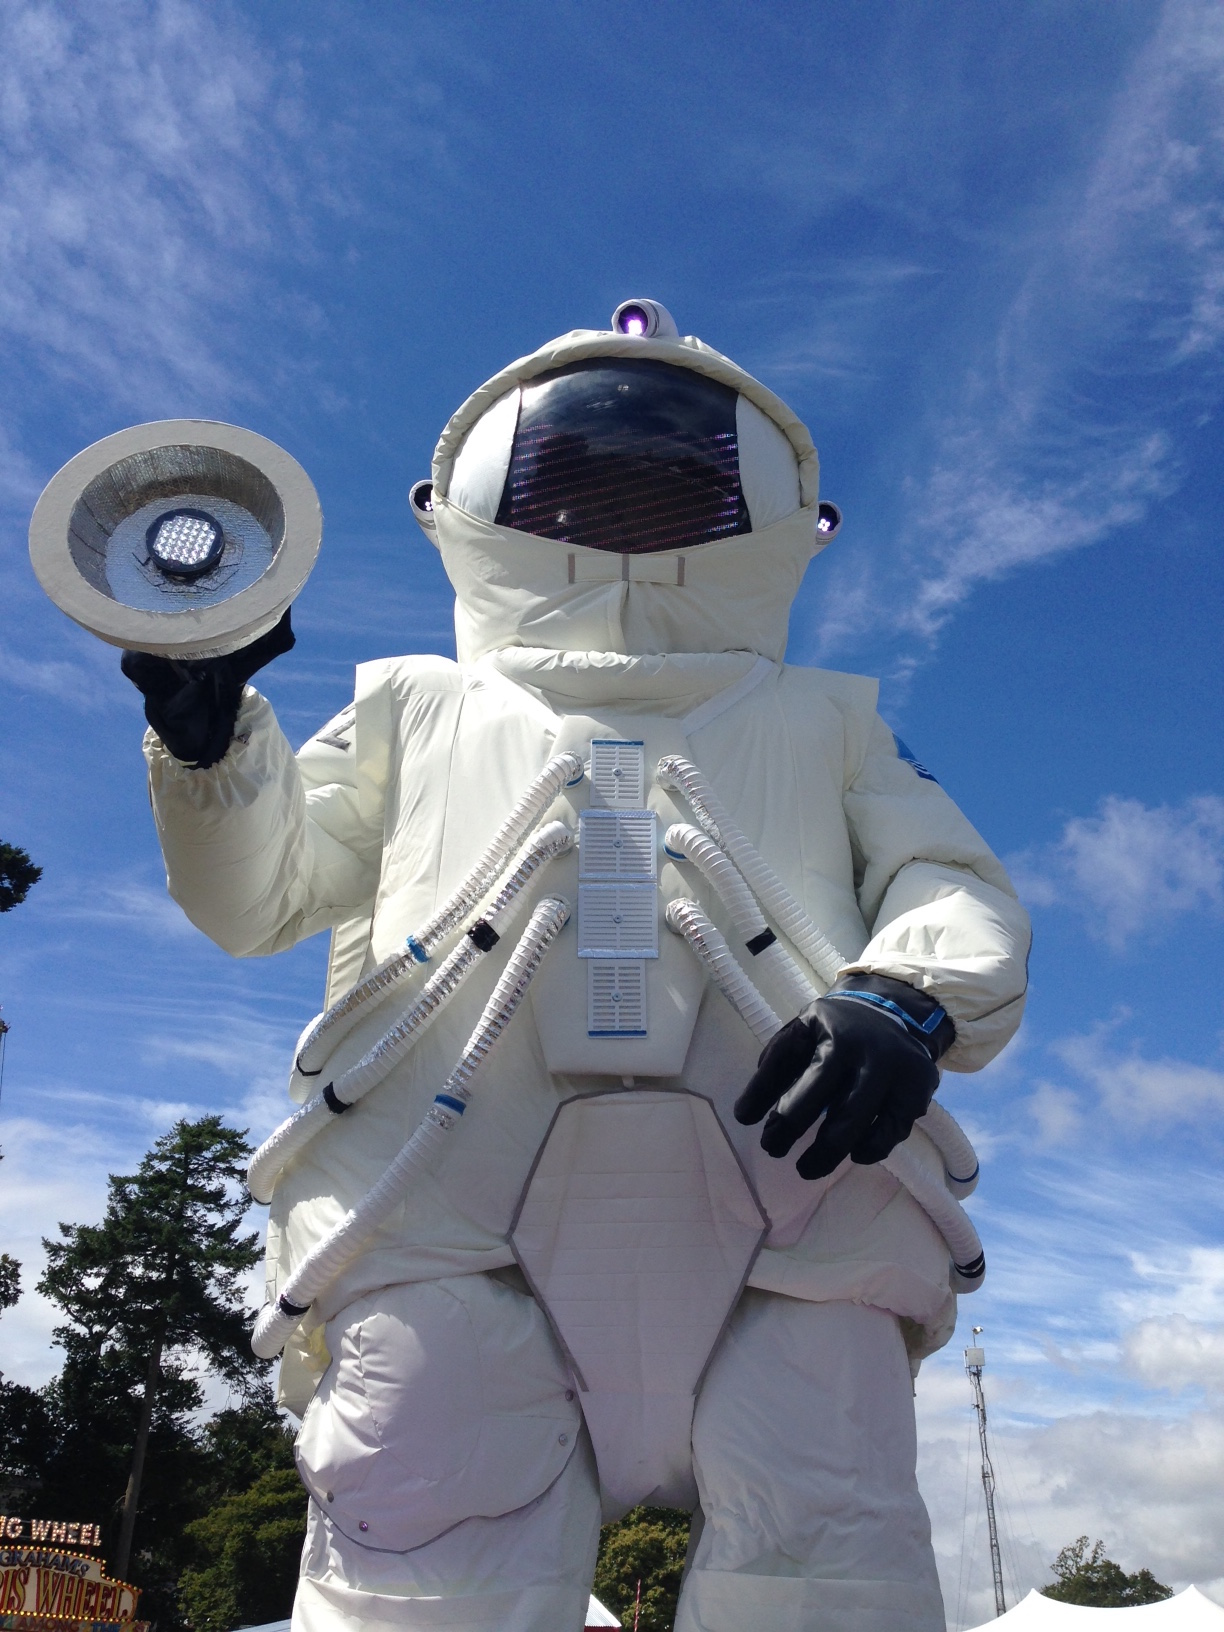 Time Travelling in Outer Space! now>press>play at Camp Bestival!